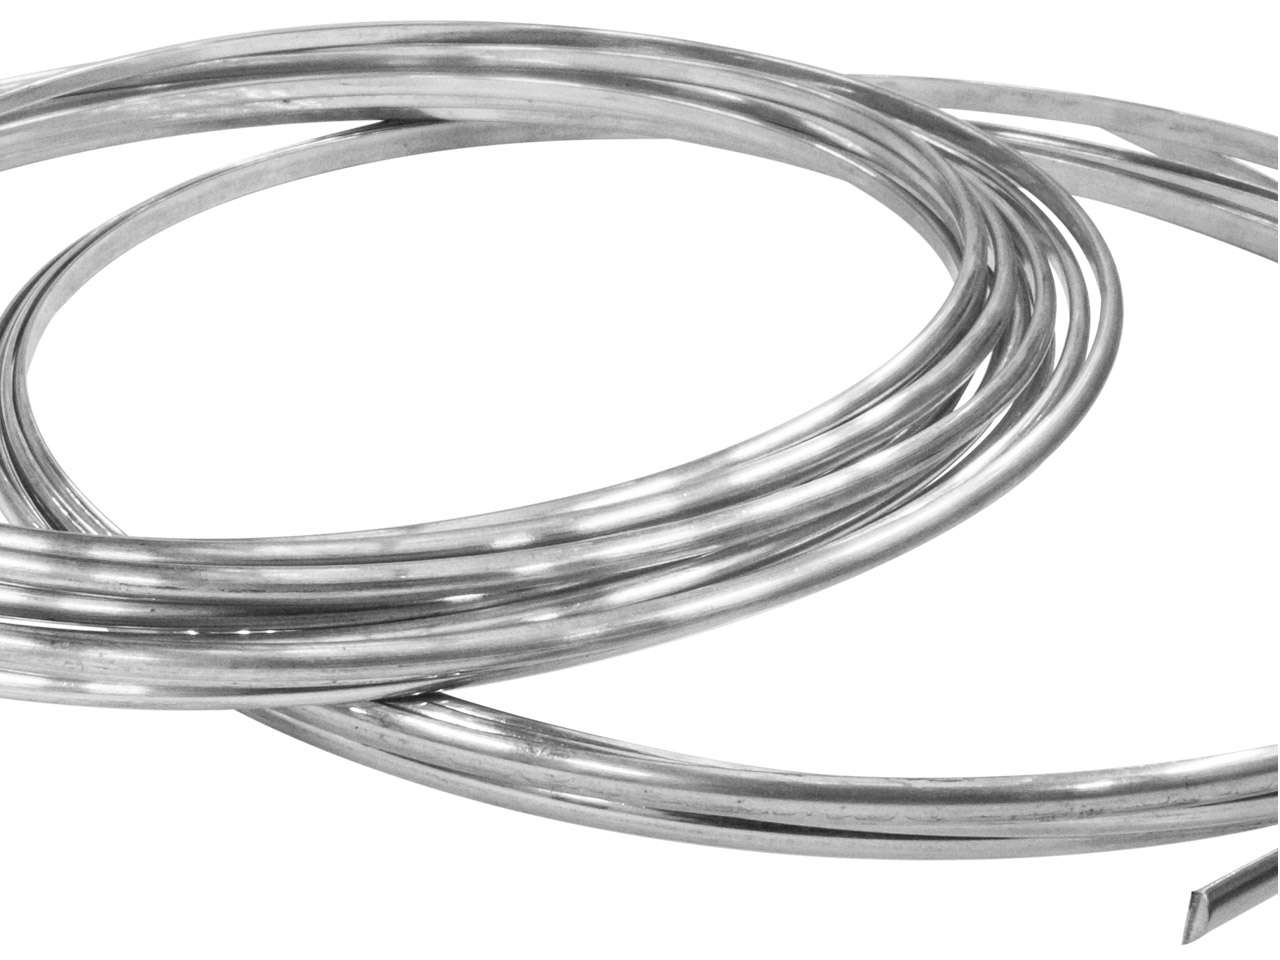 Fil demi jonc, 3,00 x 1,20 mm, Or 18k gris BN, recuit